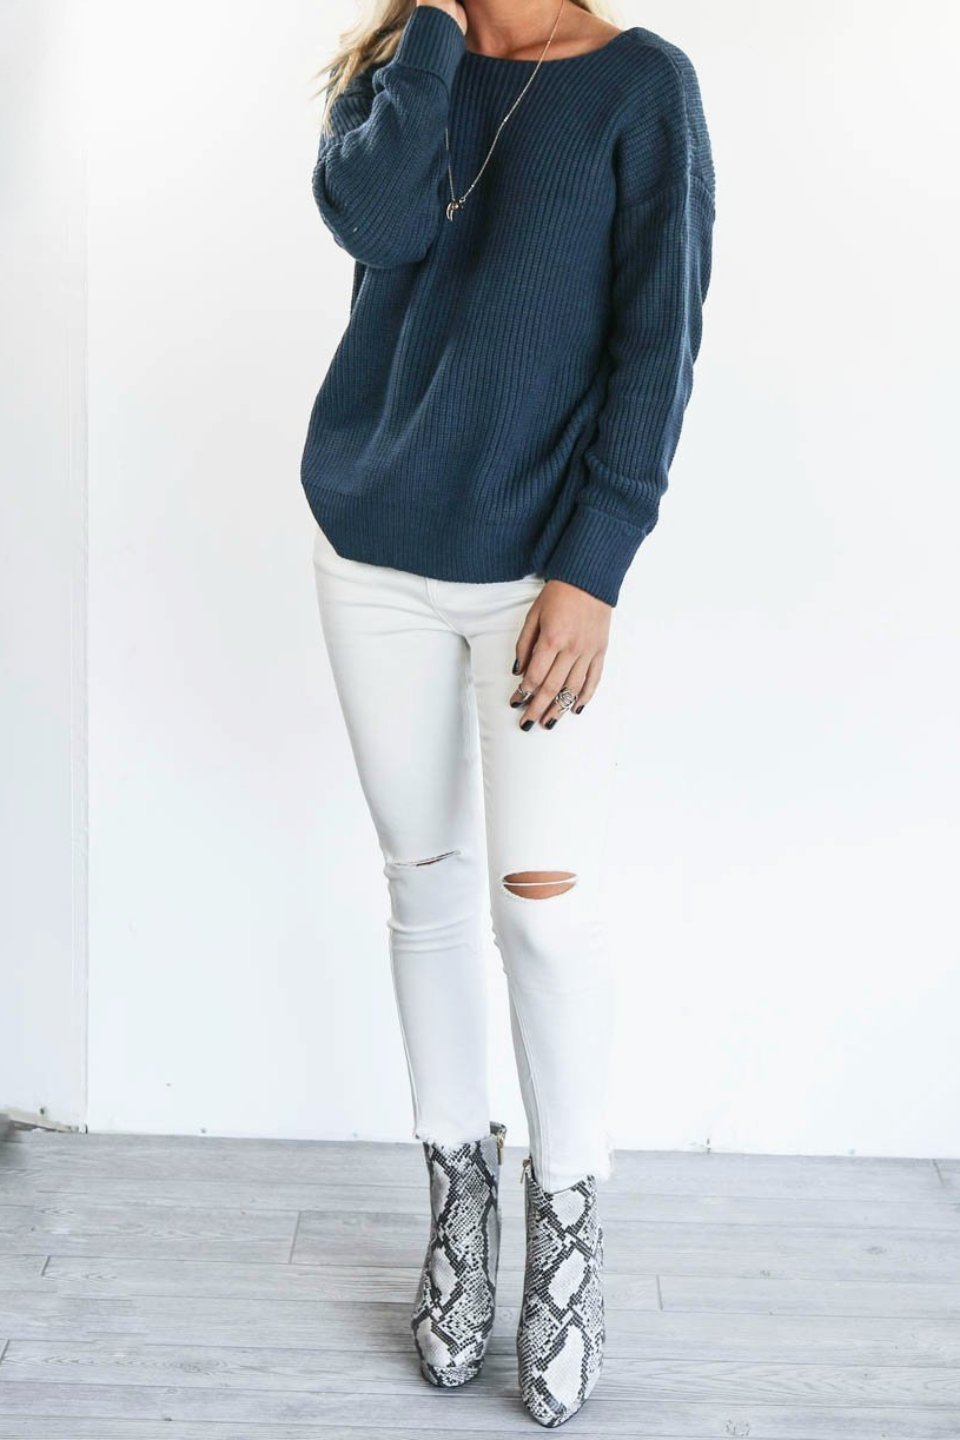 Let You Stay White Ripped Knee Skinny Jean - Amazing Lace